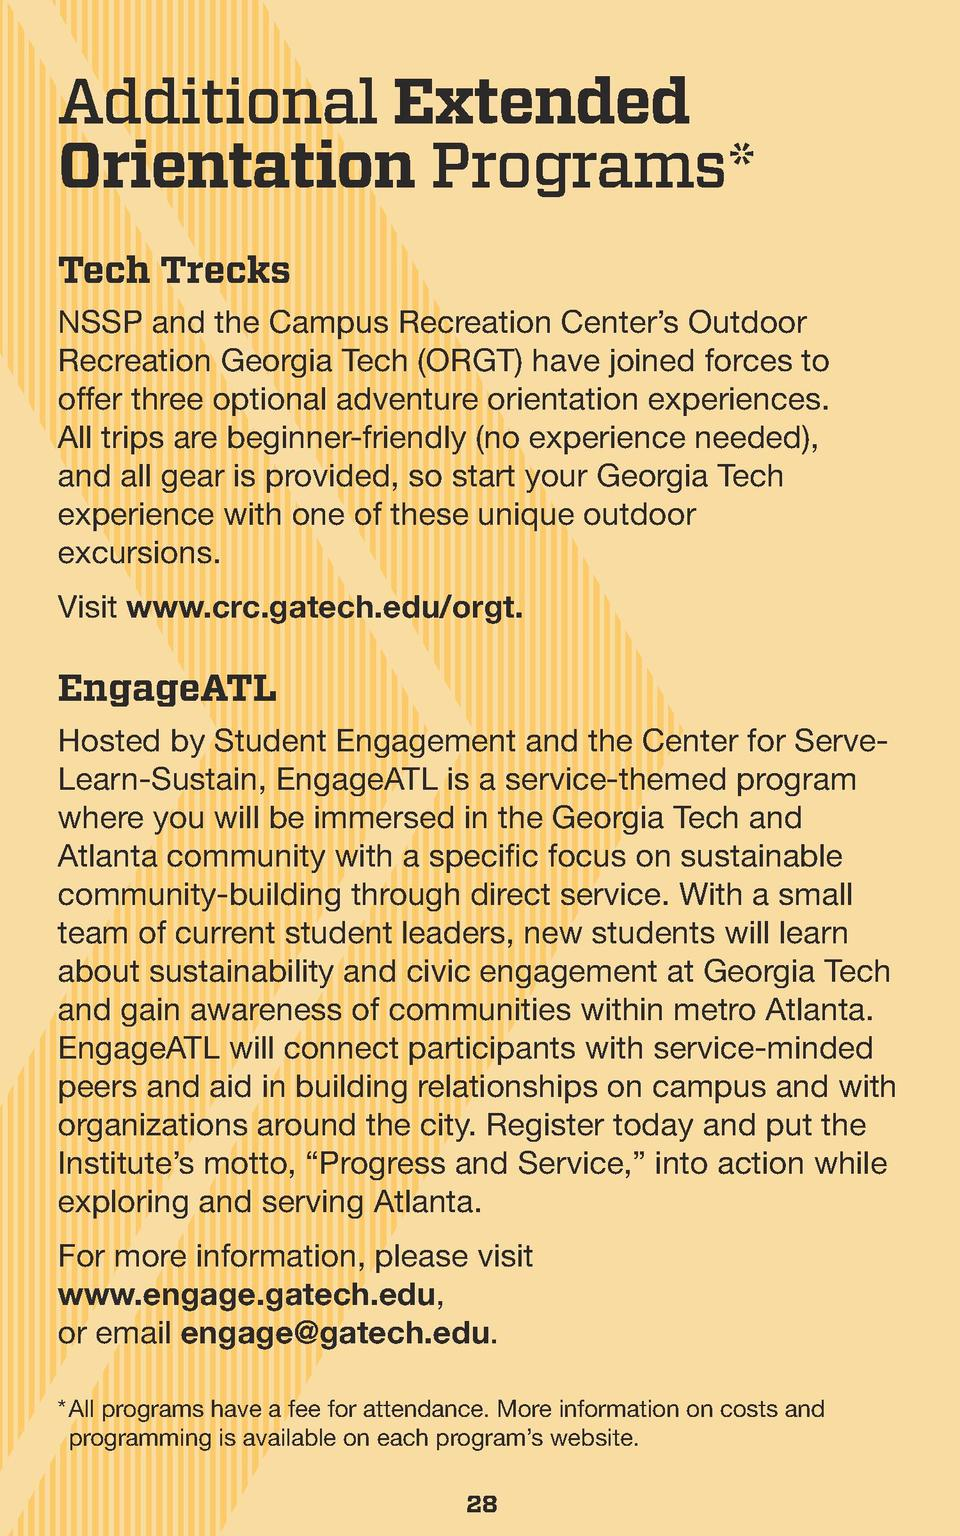 Additional Extended Orientation Programs  Tech Trecks NSSP and the Campus Recreation Center   s Outdoor Recreation Georgia...